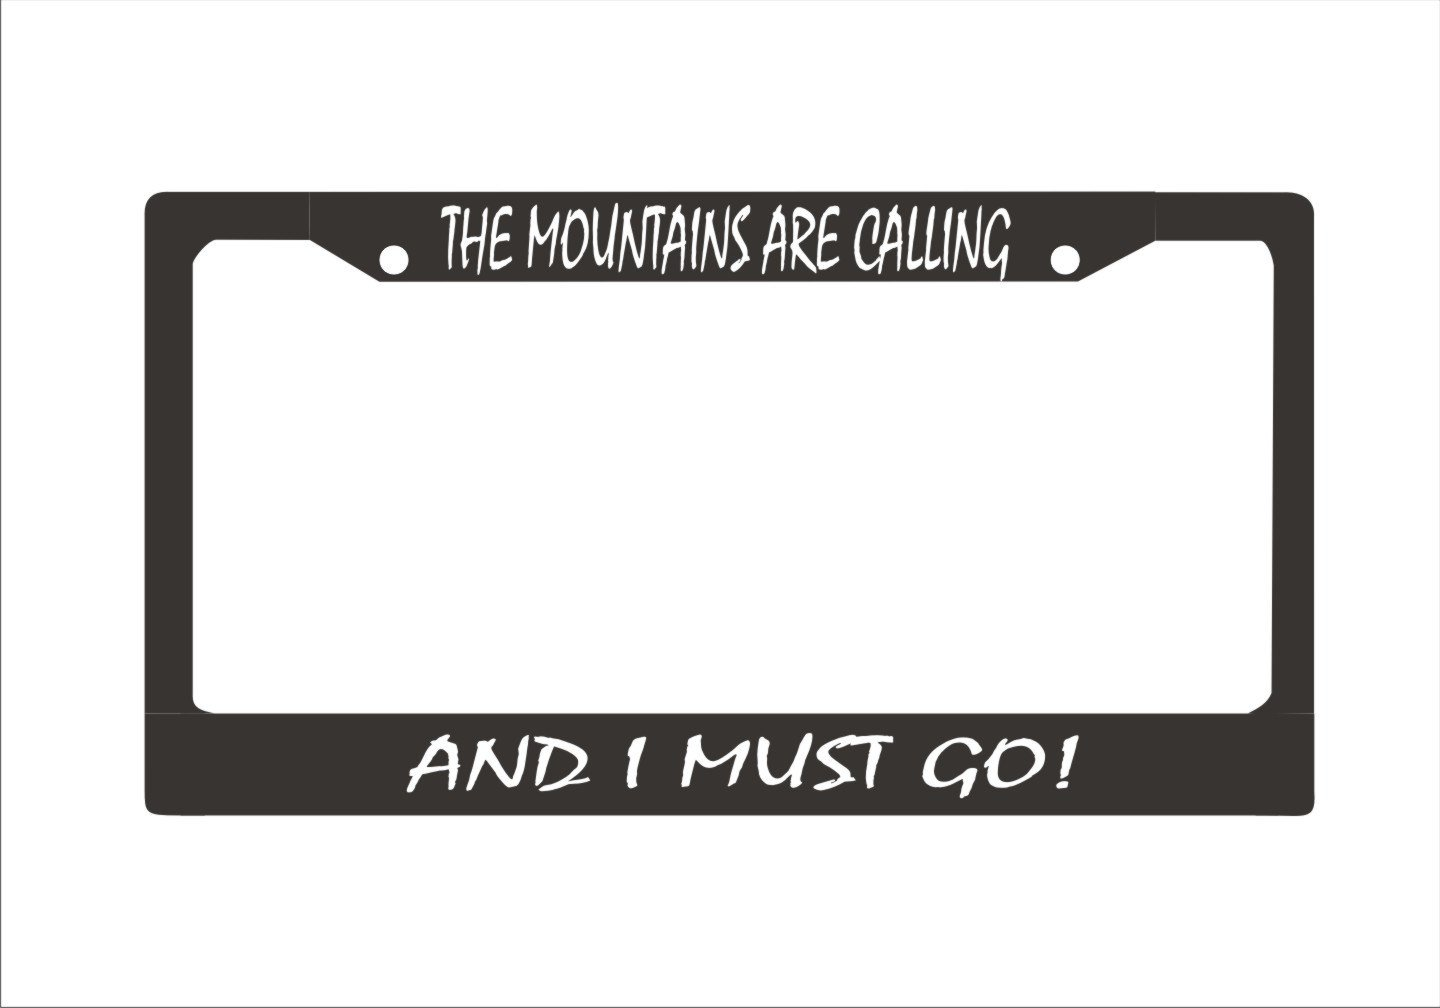 Personalized The Mountains Are Calling And I Must Go License Plate Frame, The Mountains Are Calling License Plate Frame, Funny Mountiner Car Plate Frame.